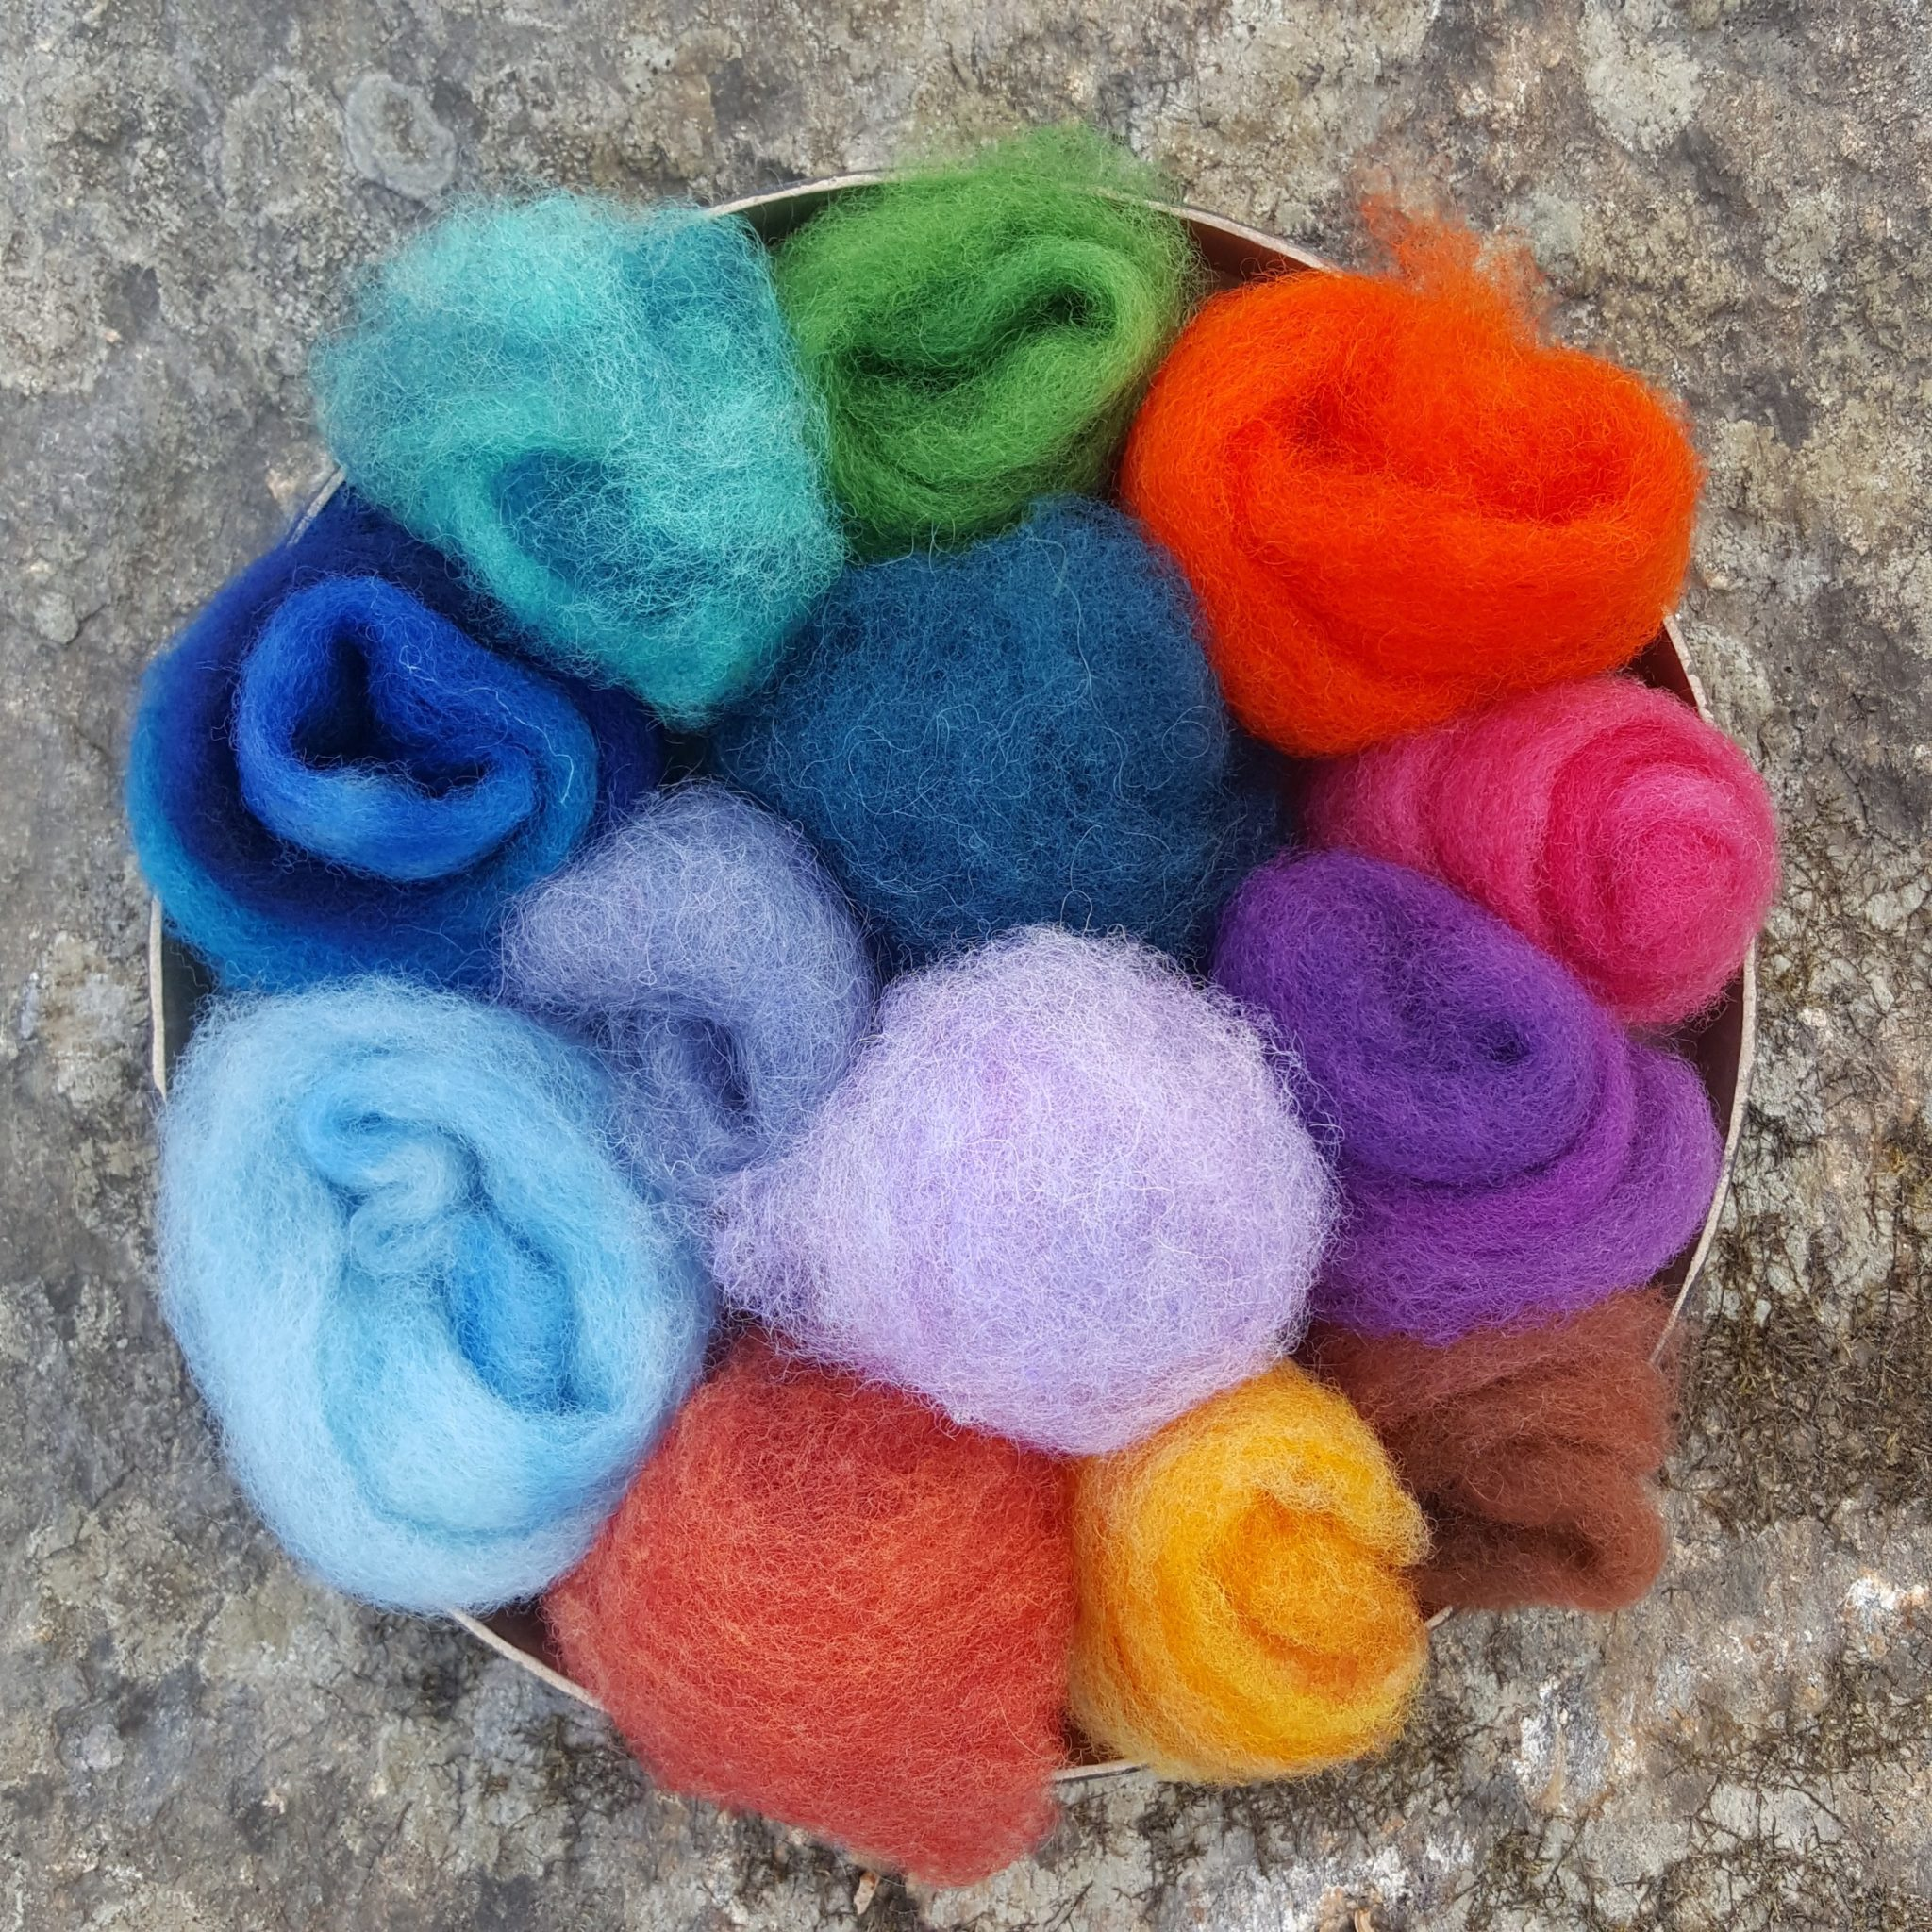 Felting wool in a variety of colors, artist's palette puff pouch